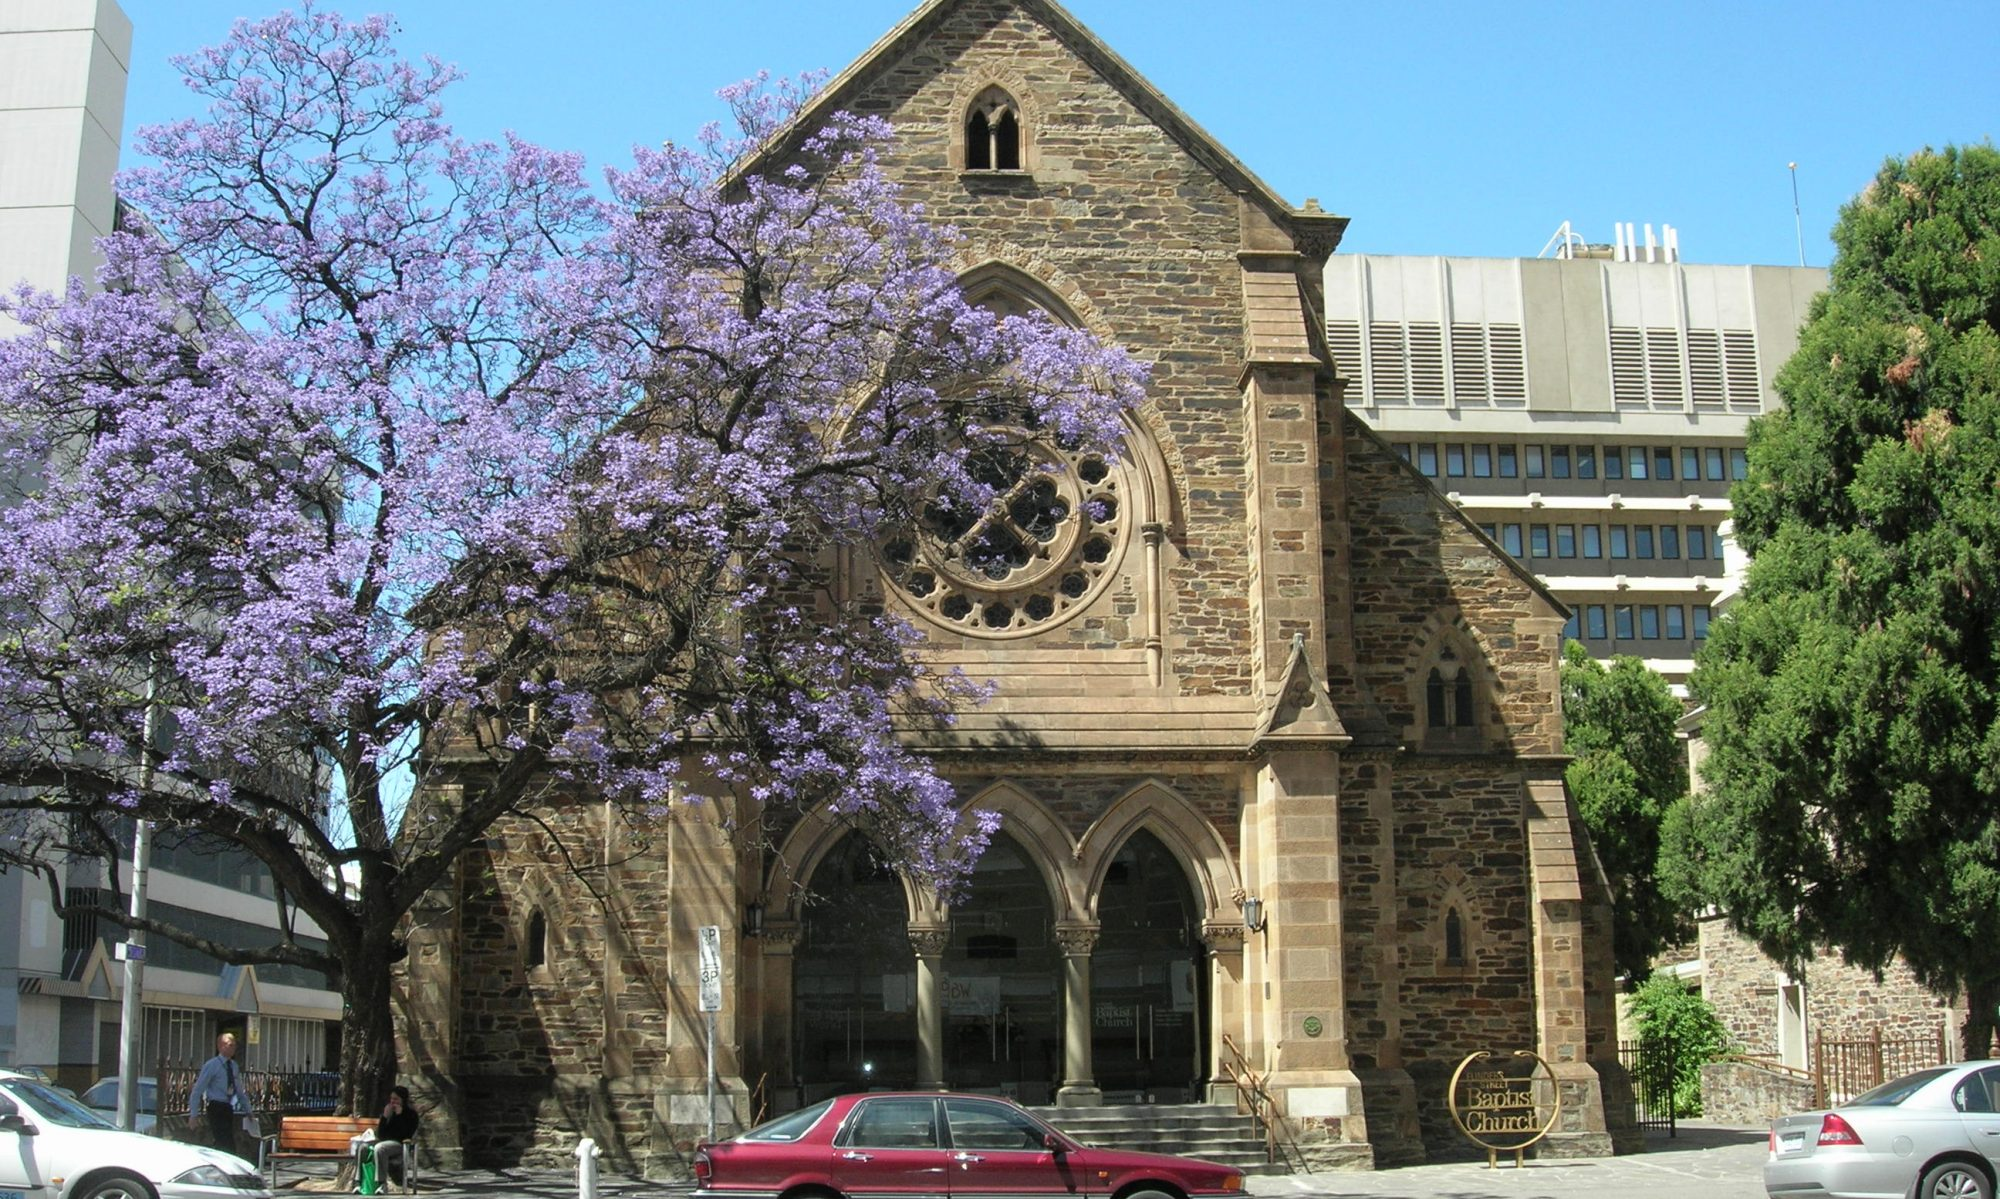 Flinders St Baptist Church